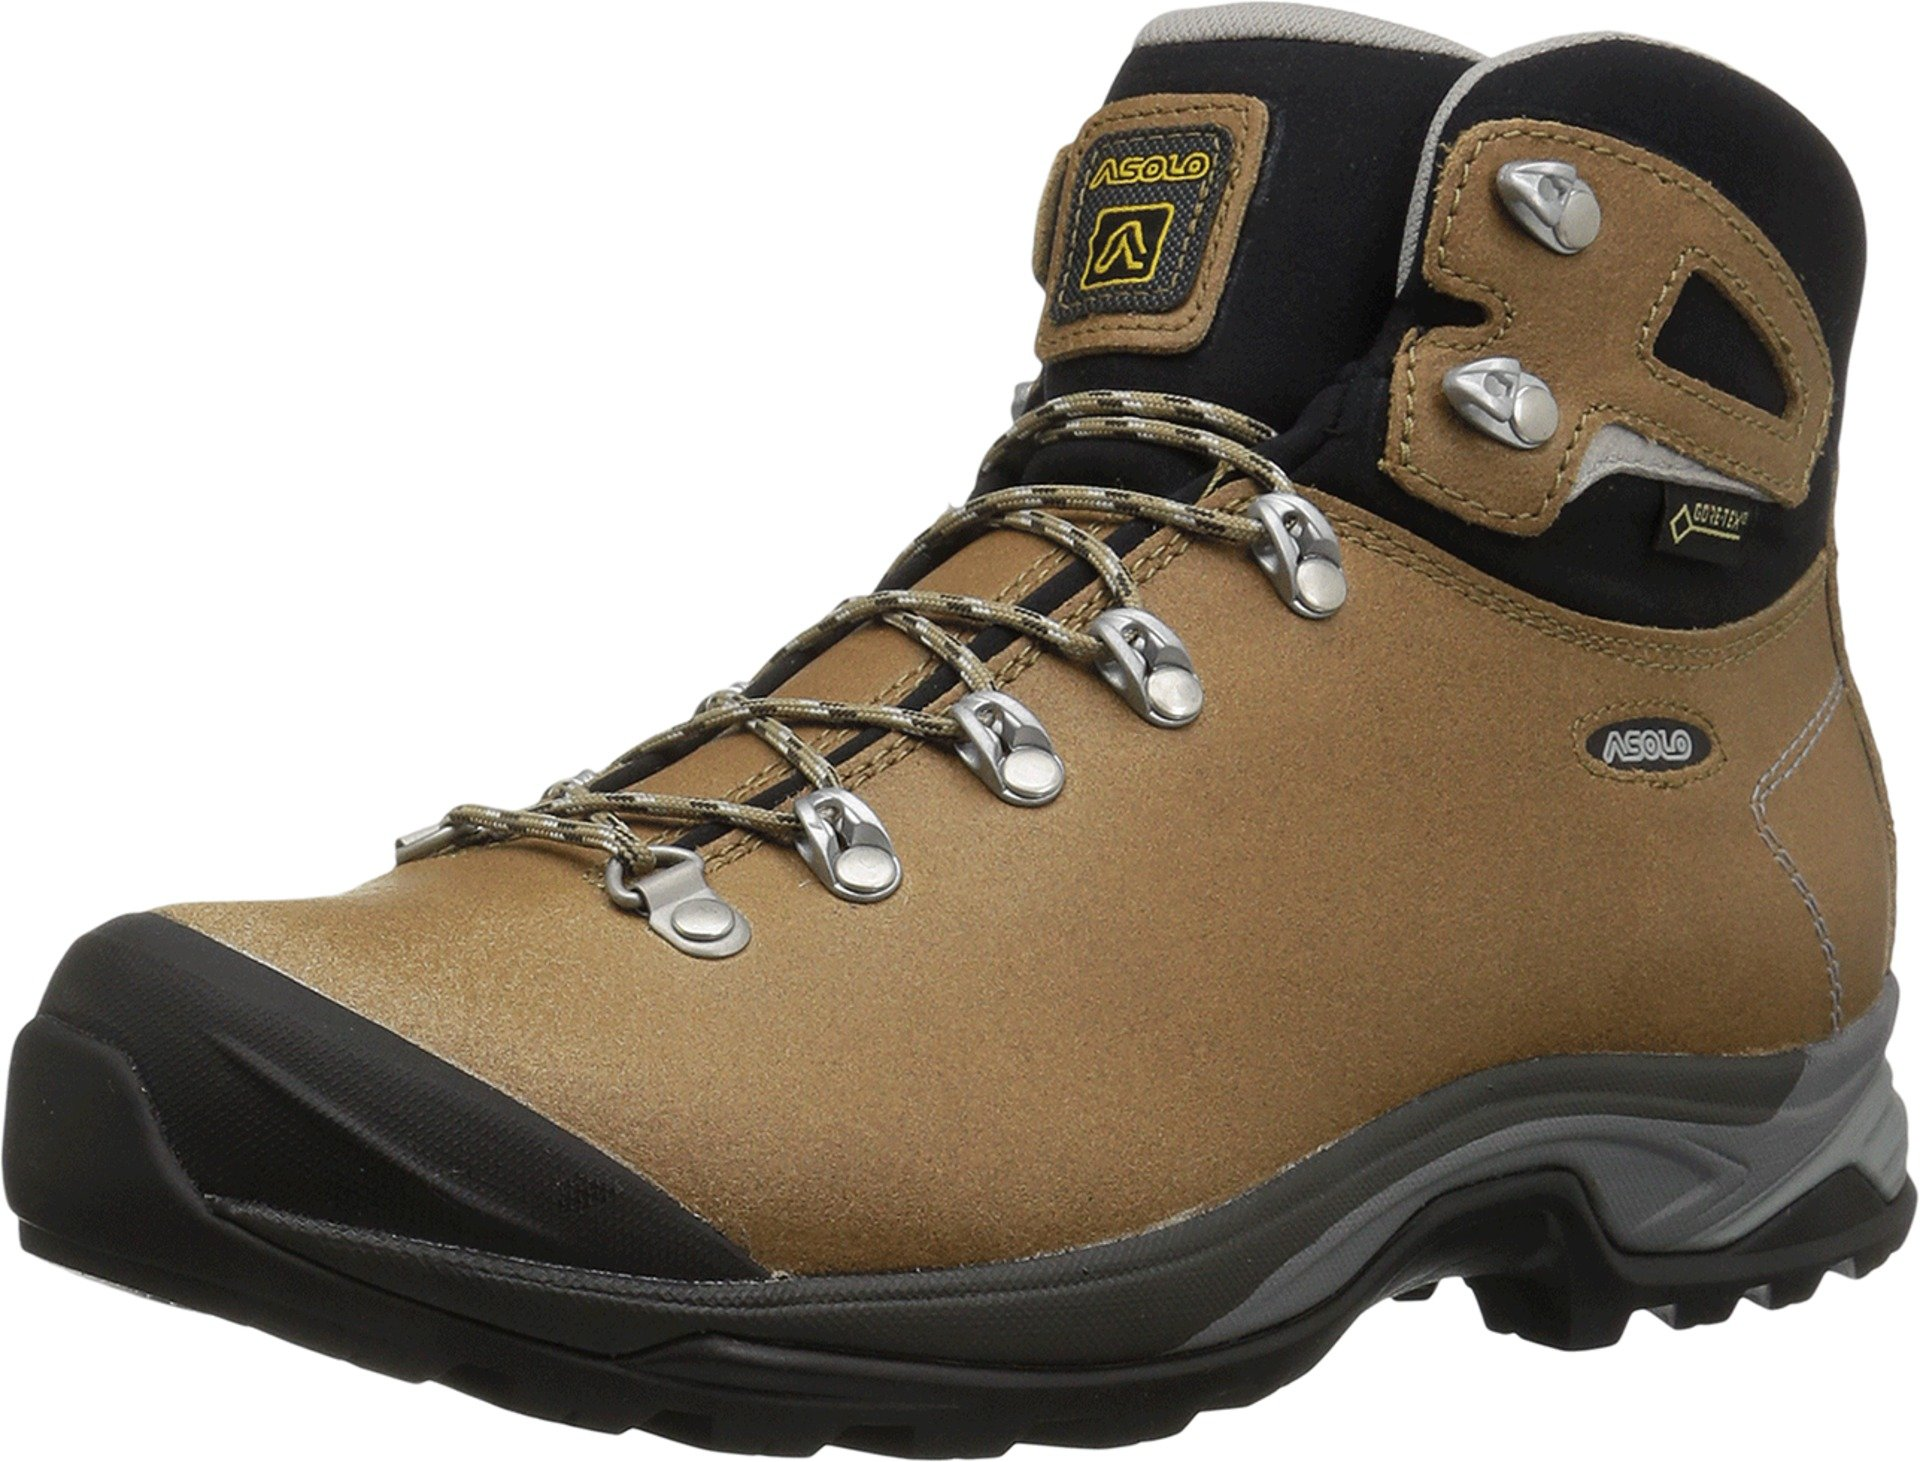 Asolo Thyrus GV Boot - Women's Brown Sugar / Black 9